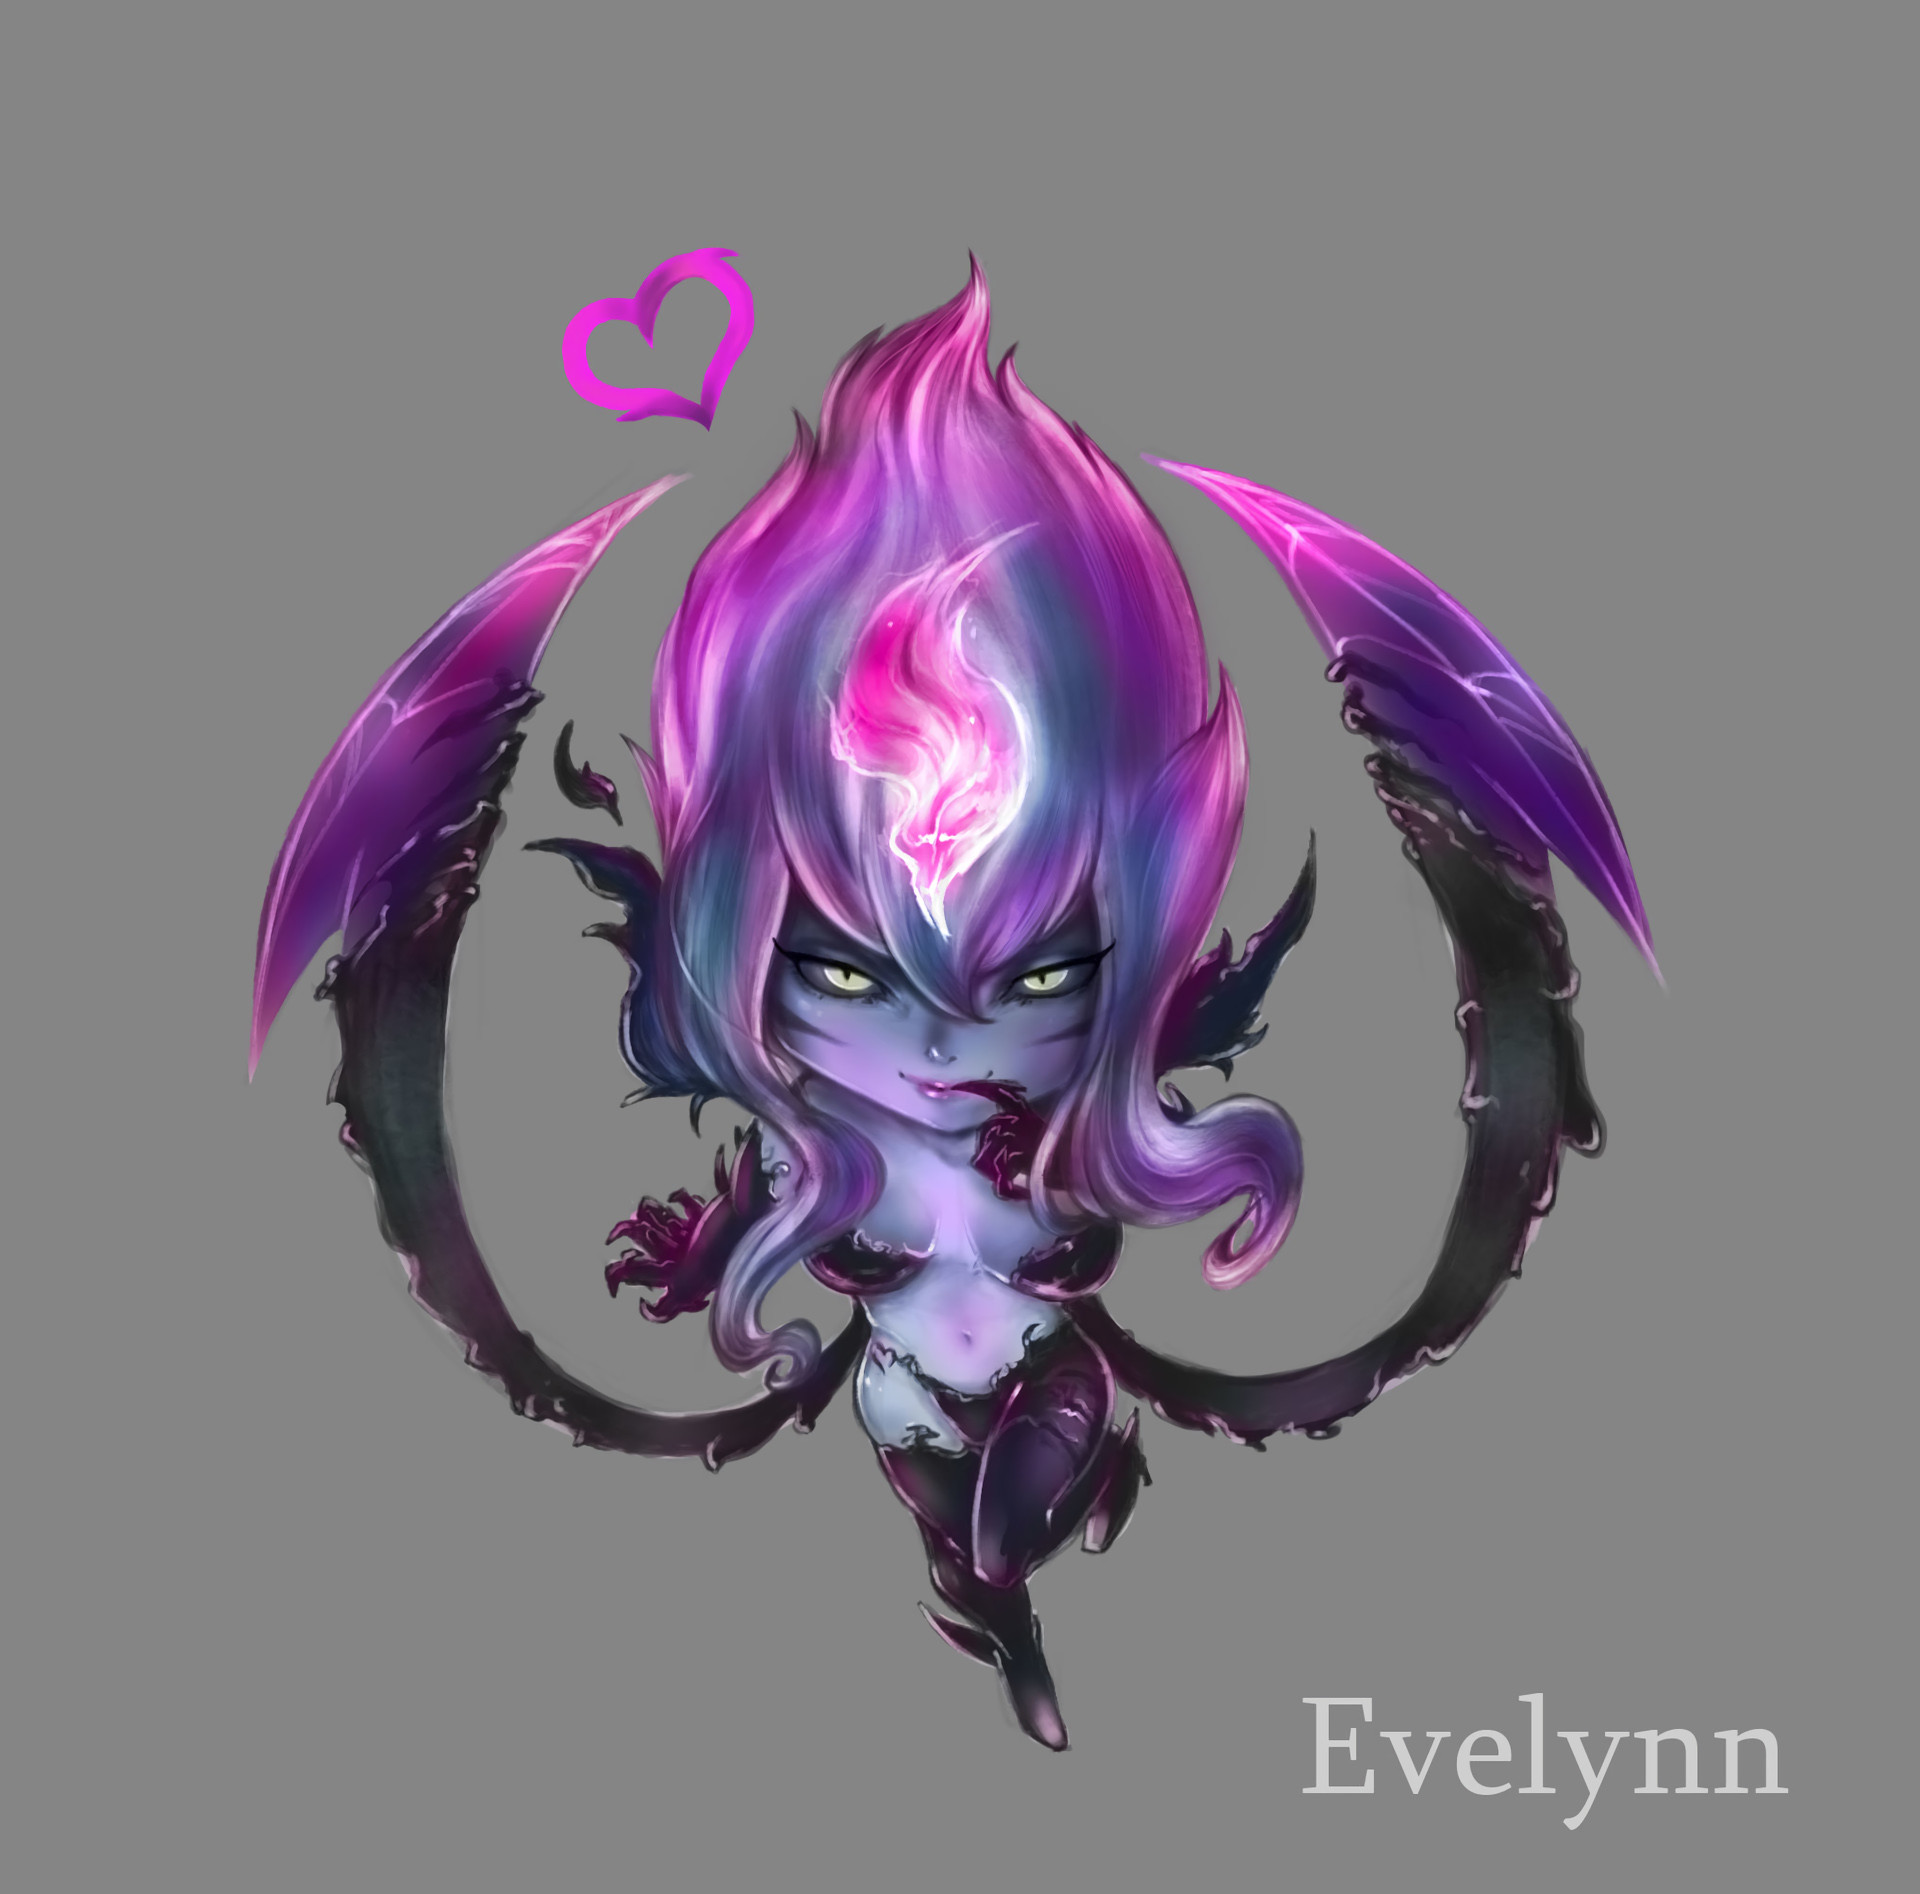 Res: 1920x1894, Chibi Evelynn Rework by tataart HD Wallpaper Background Fan Art Artwork  League of Legends lol